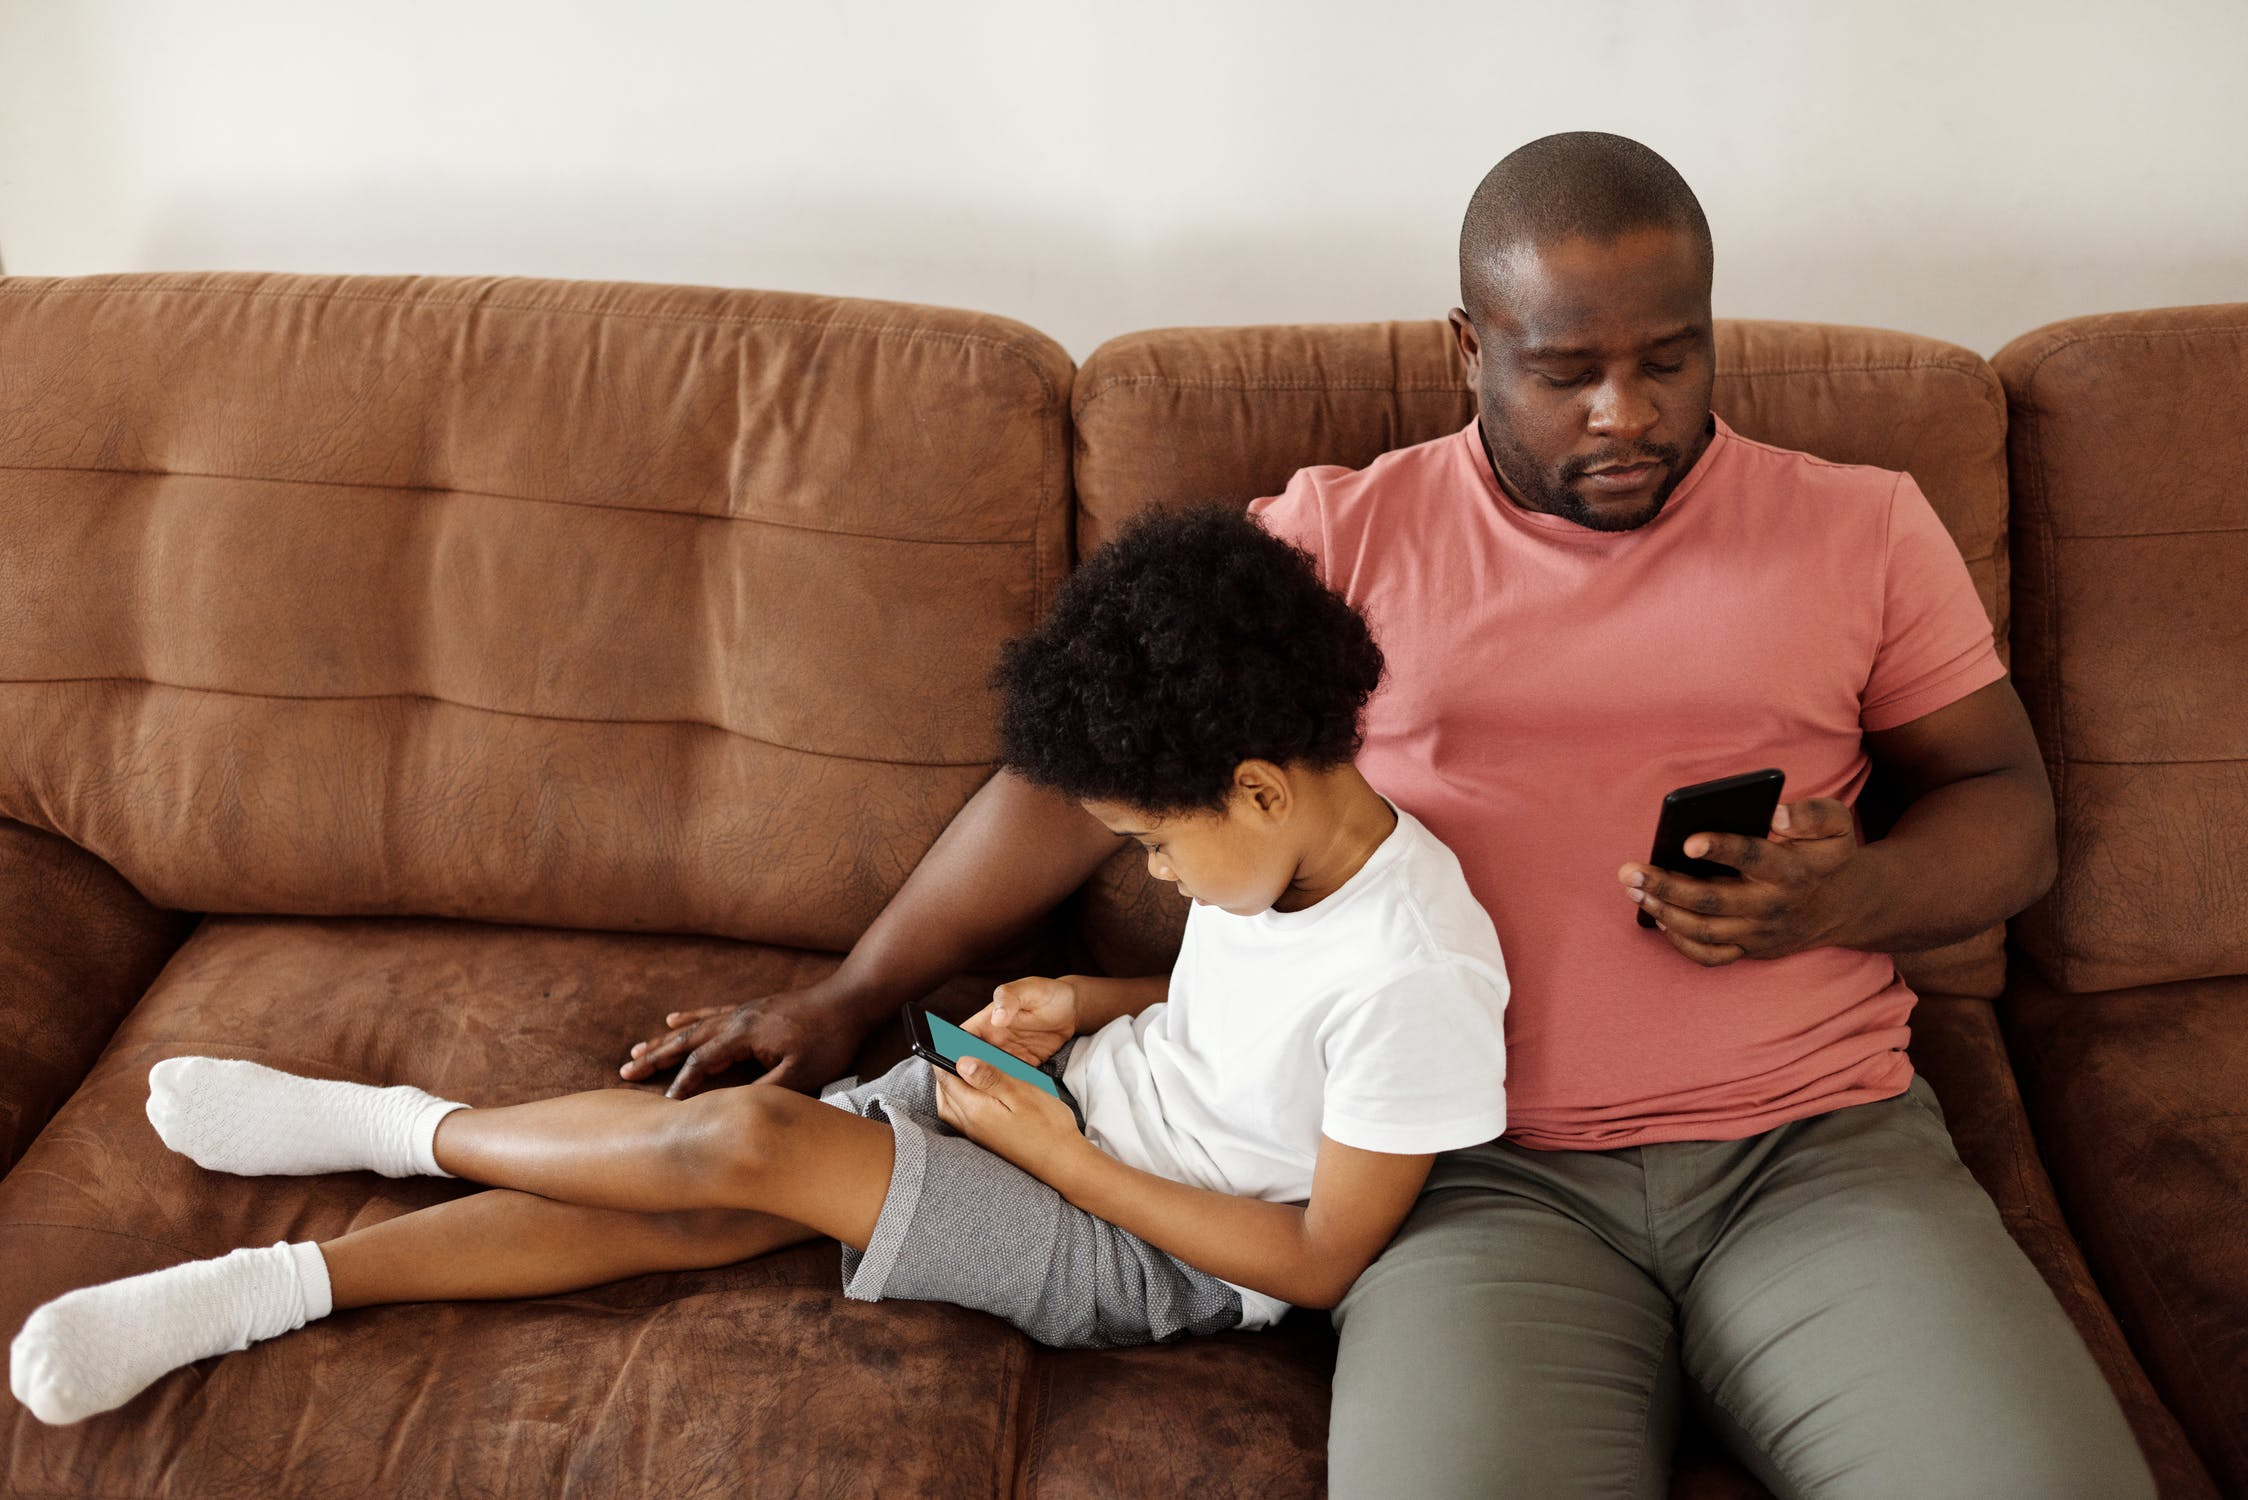 Father and son sit on the sofa looking at their phones. Photo by pexels user August de Richelieu. Photo used courtesy of pexels.com.